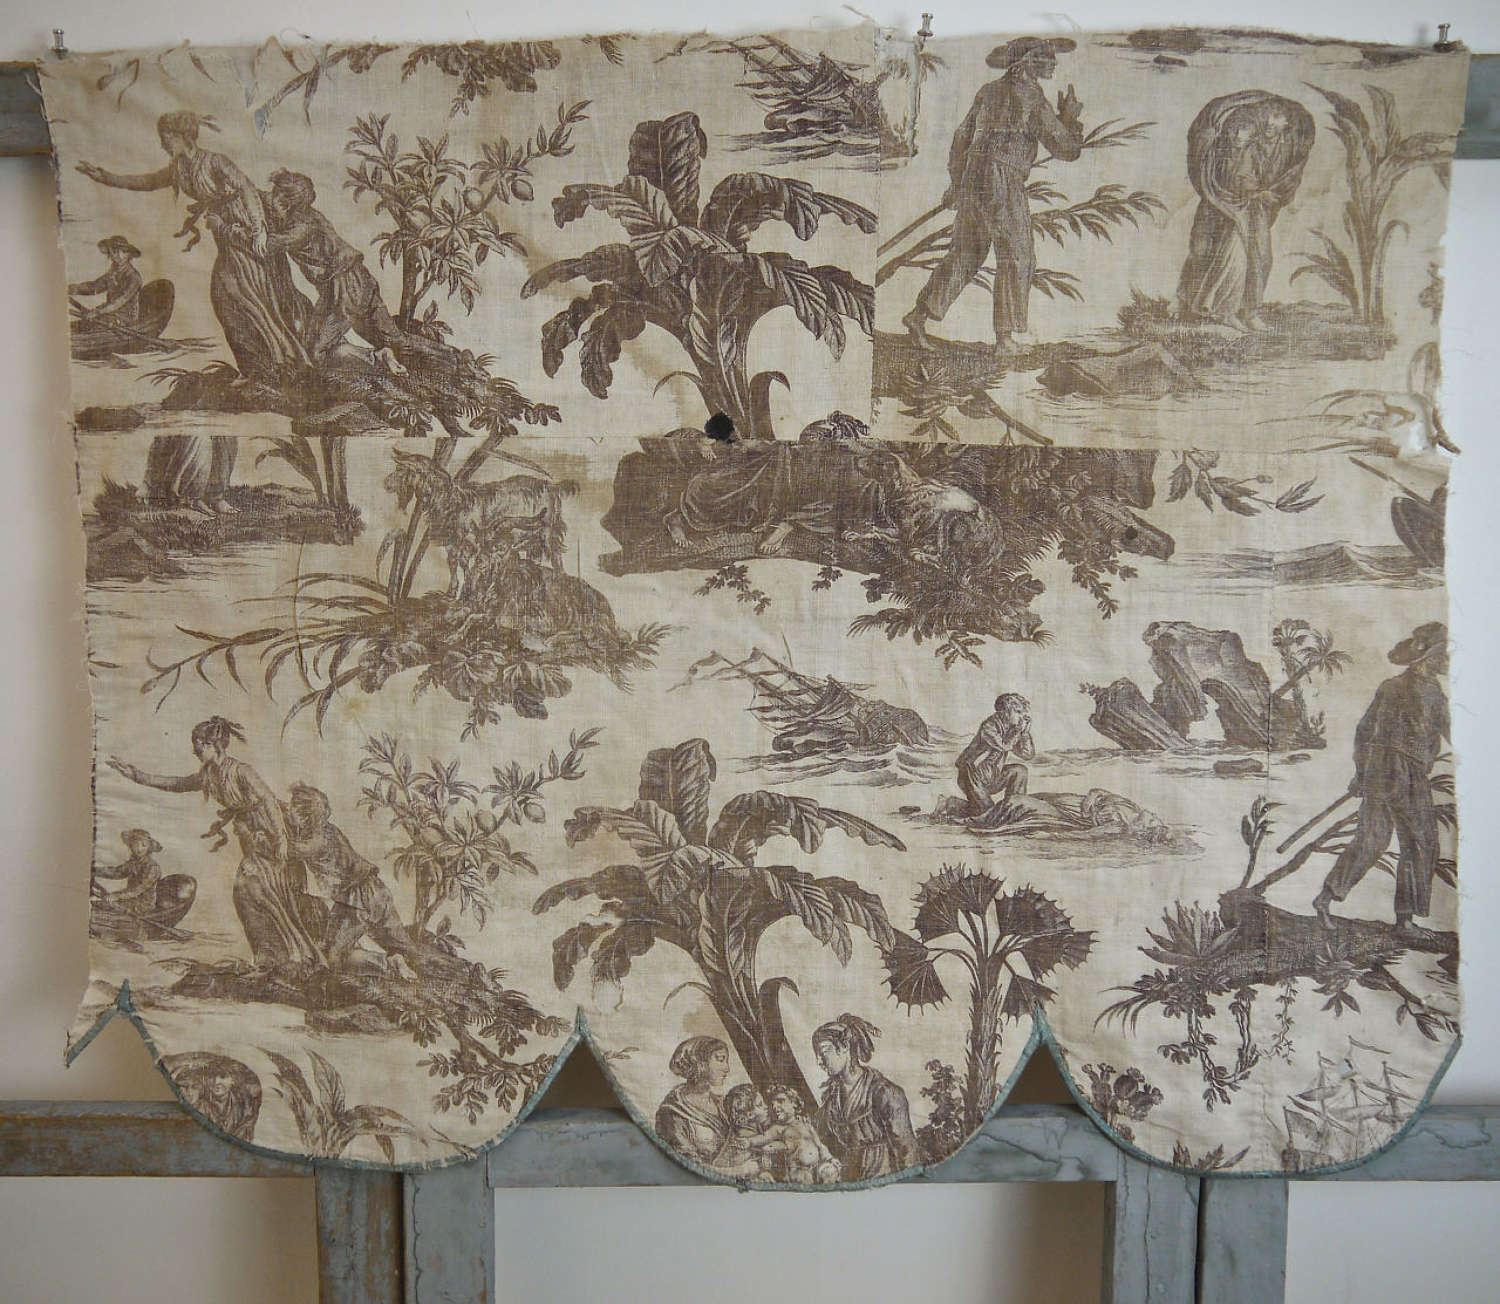 Paul et Virginie Toile de Jouy Document French c.1810